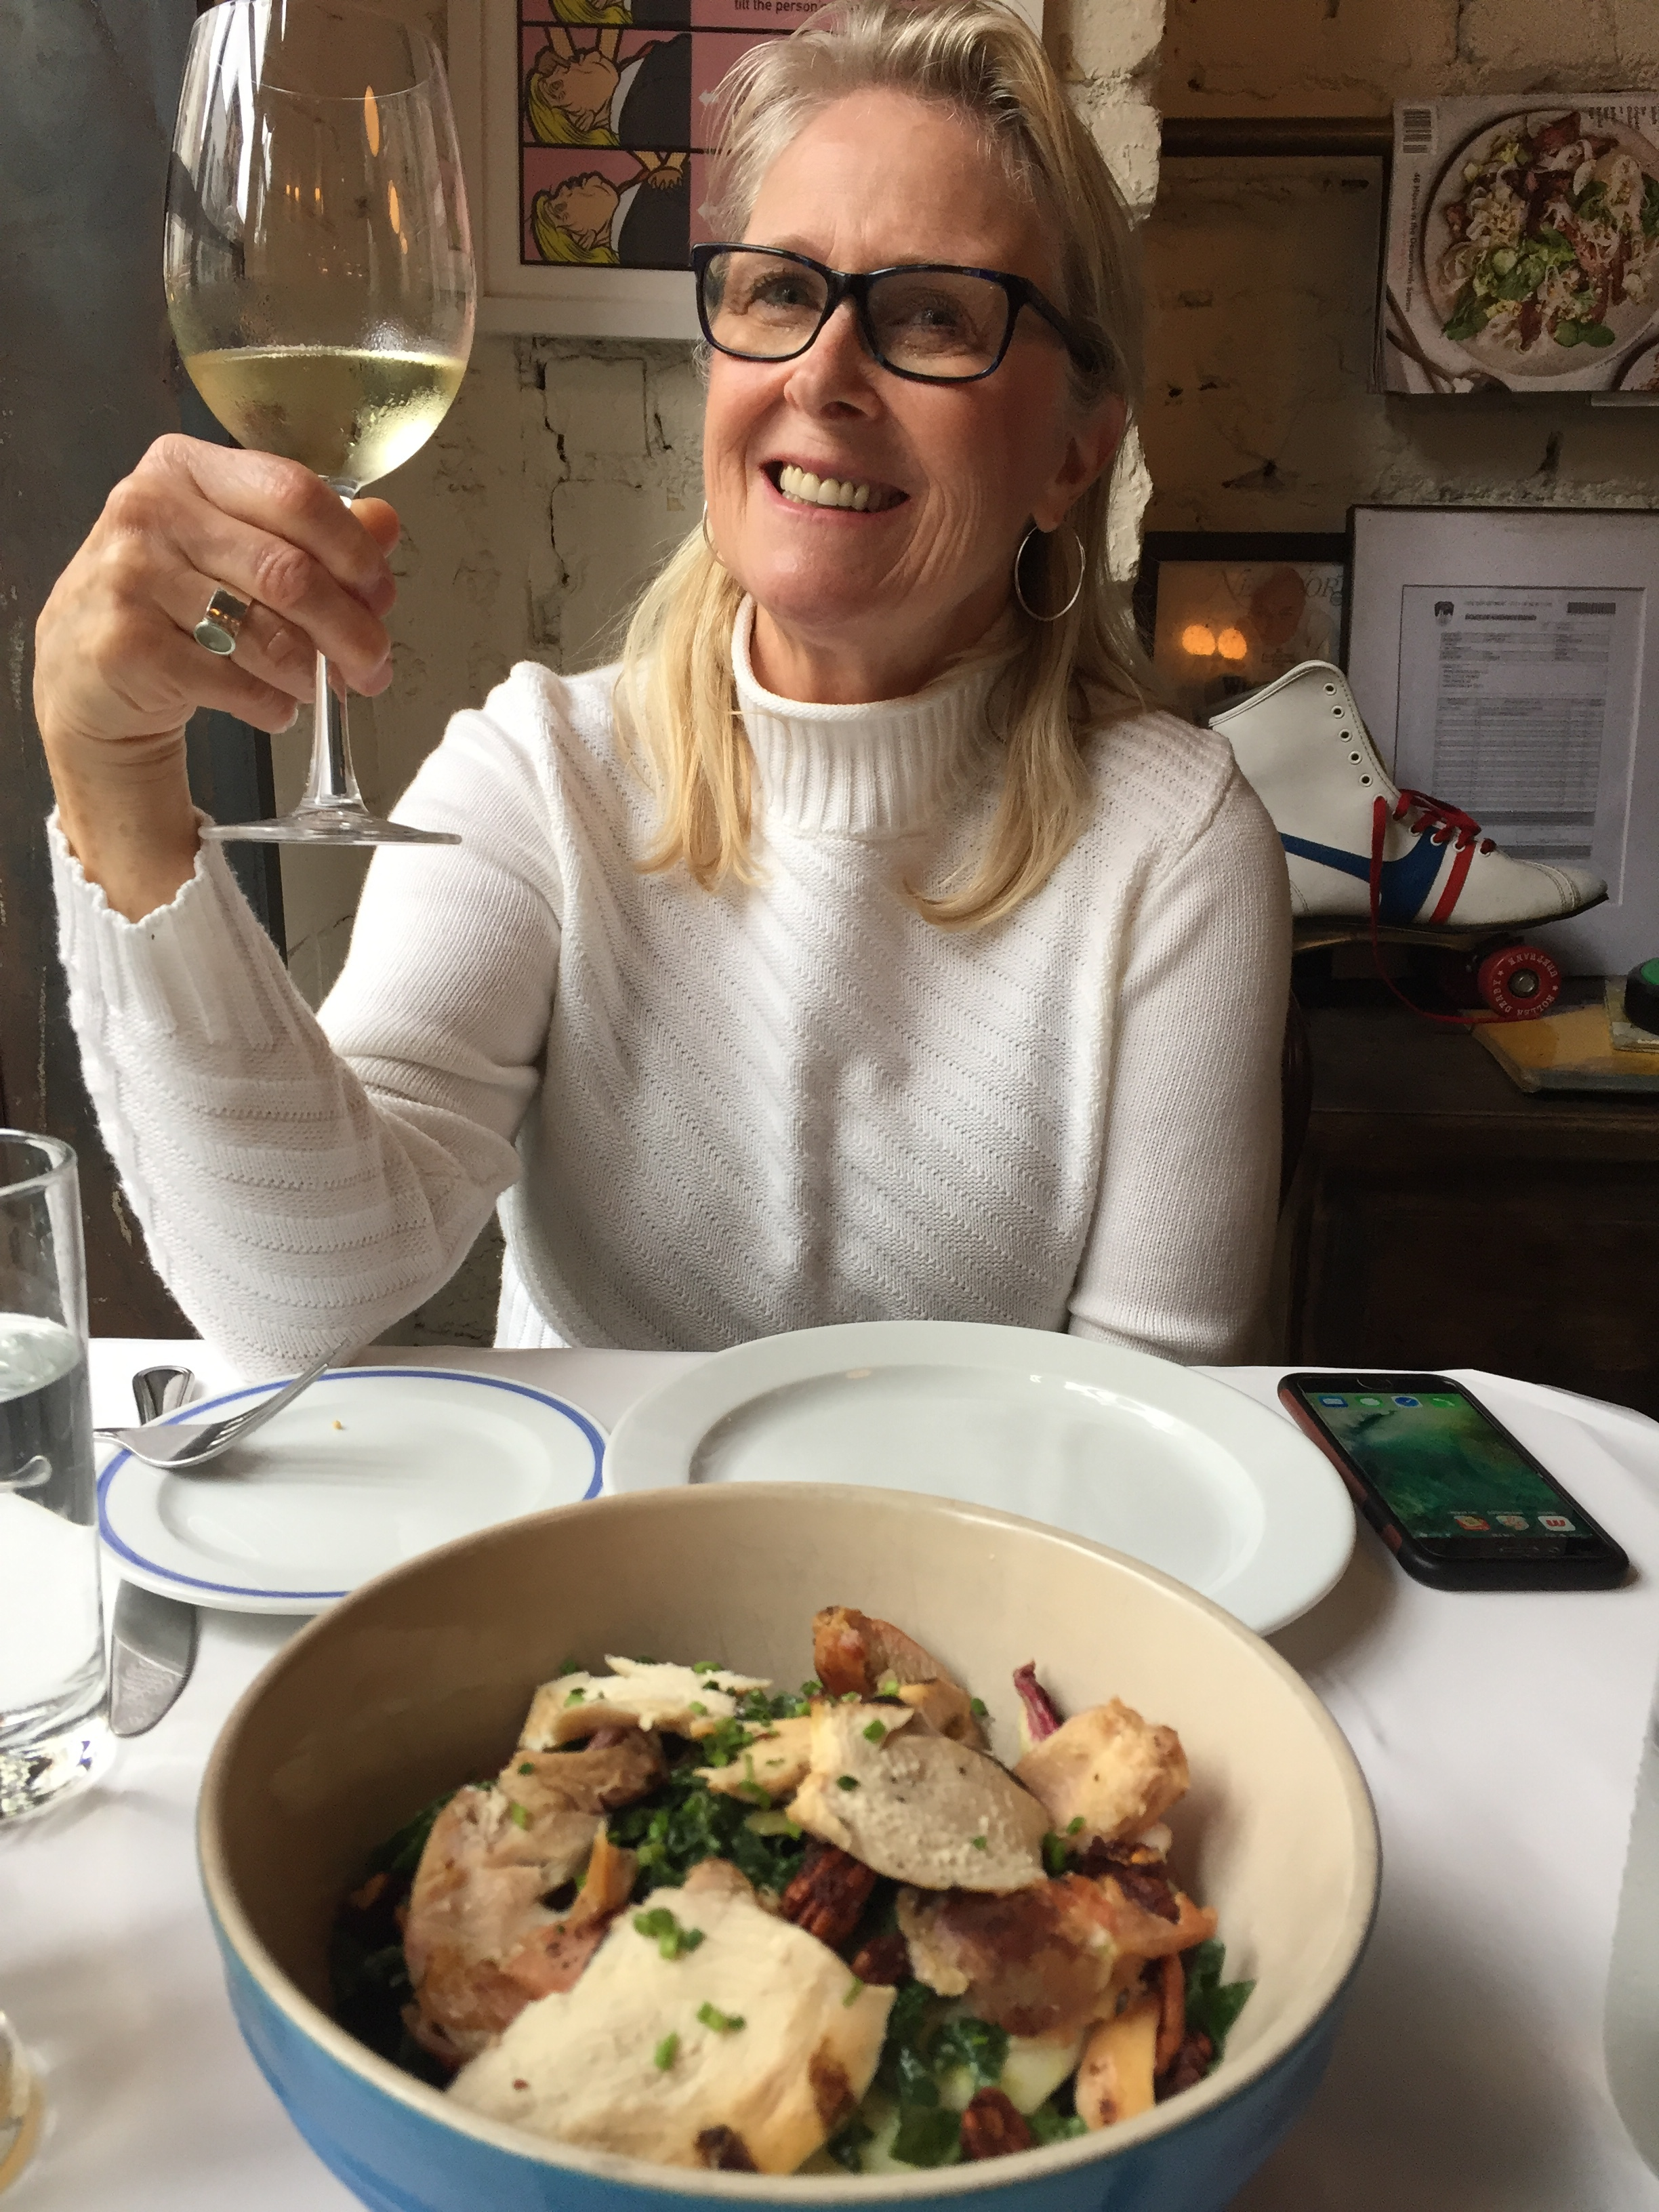 Good food and wine in SoHo